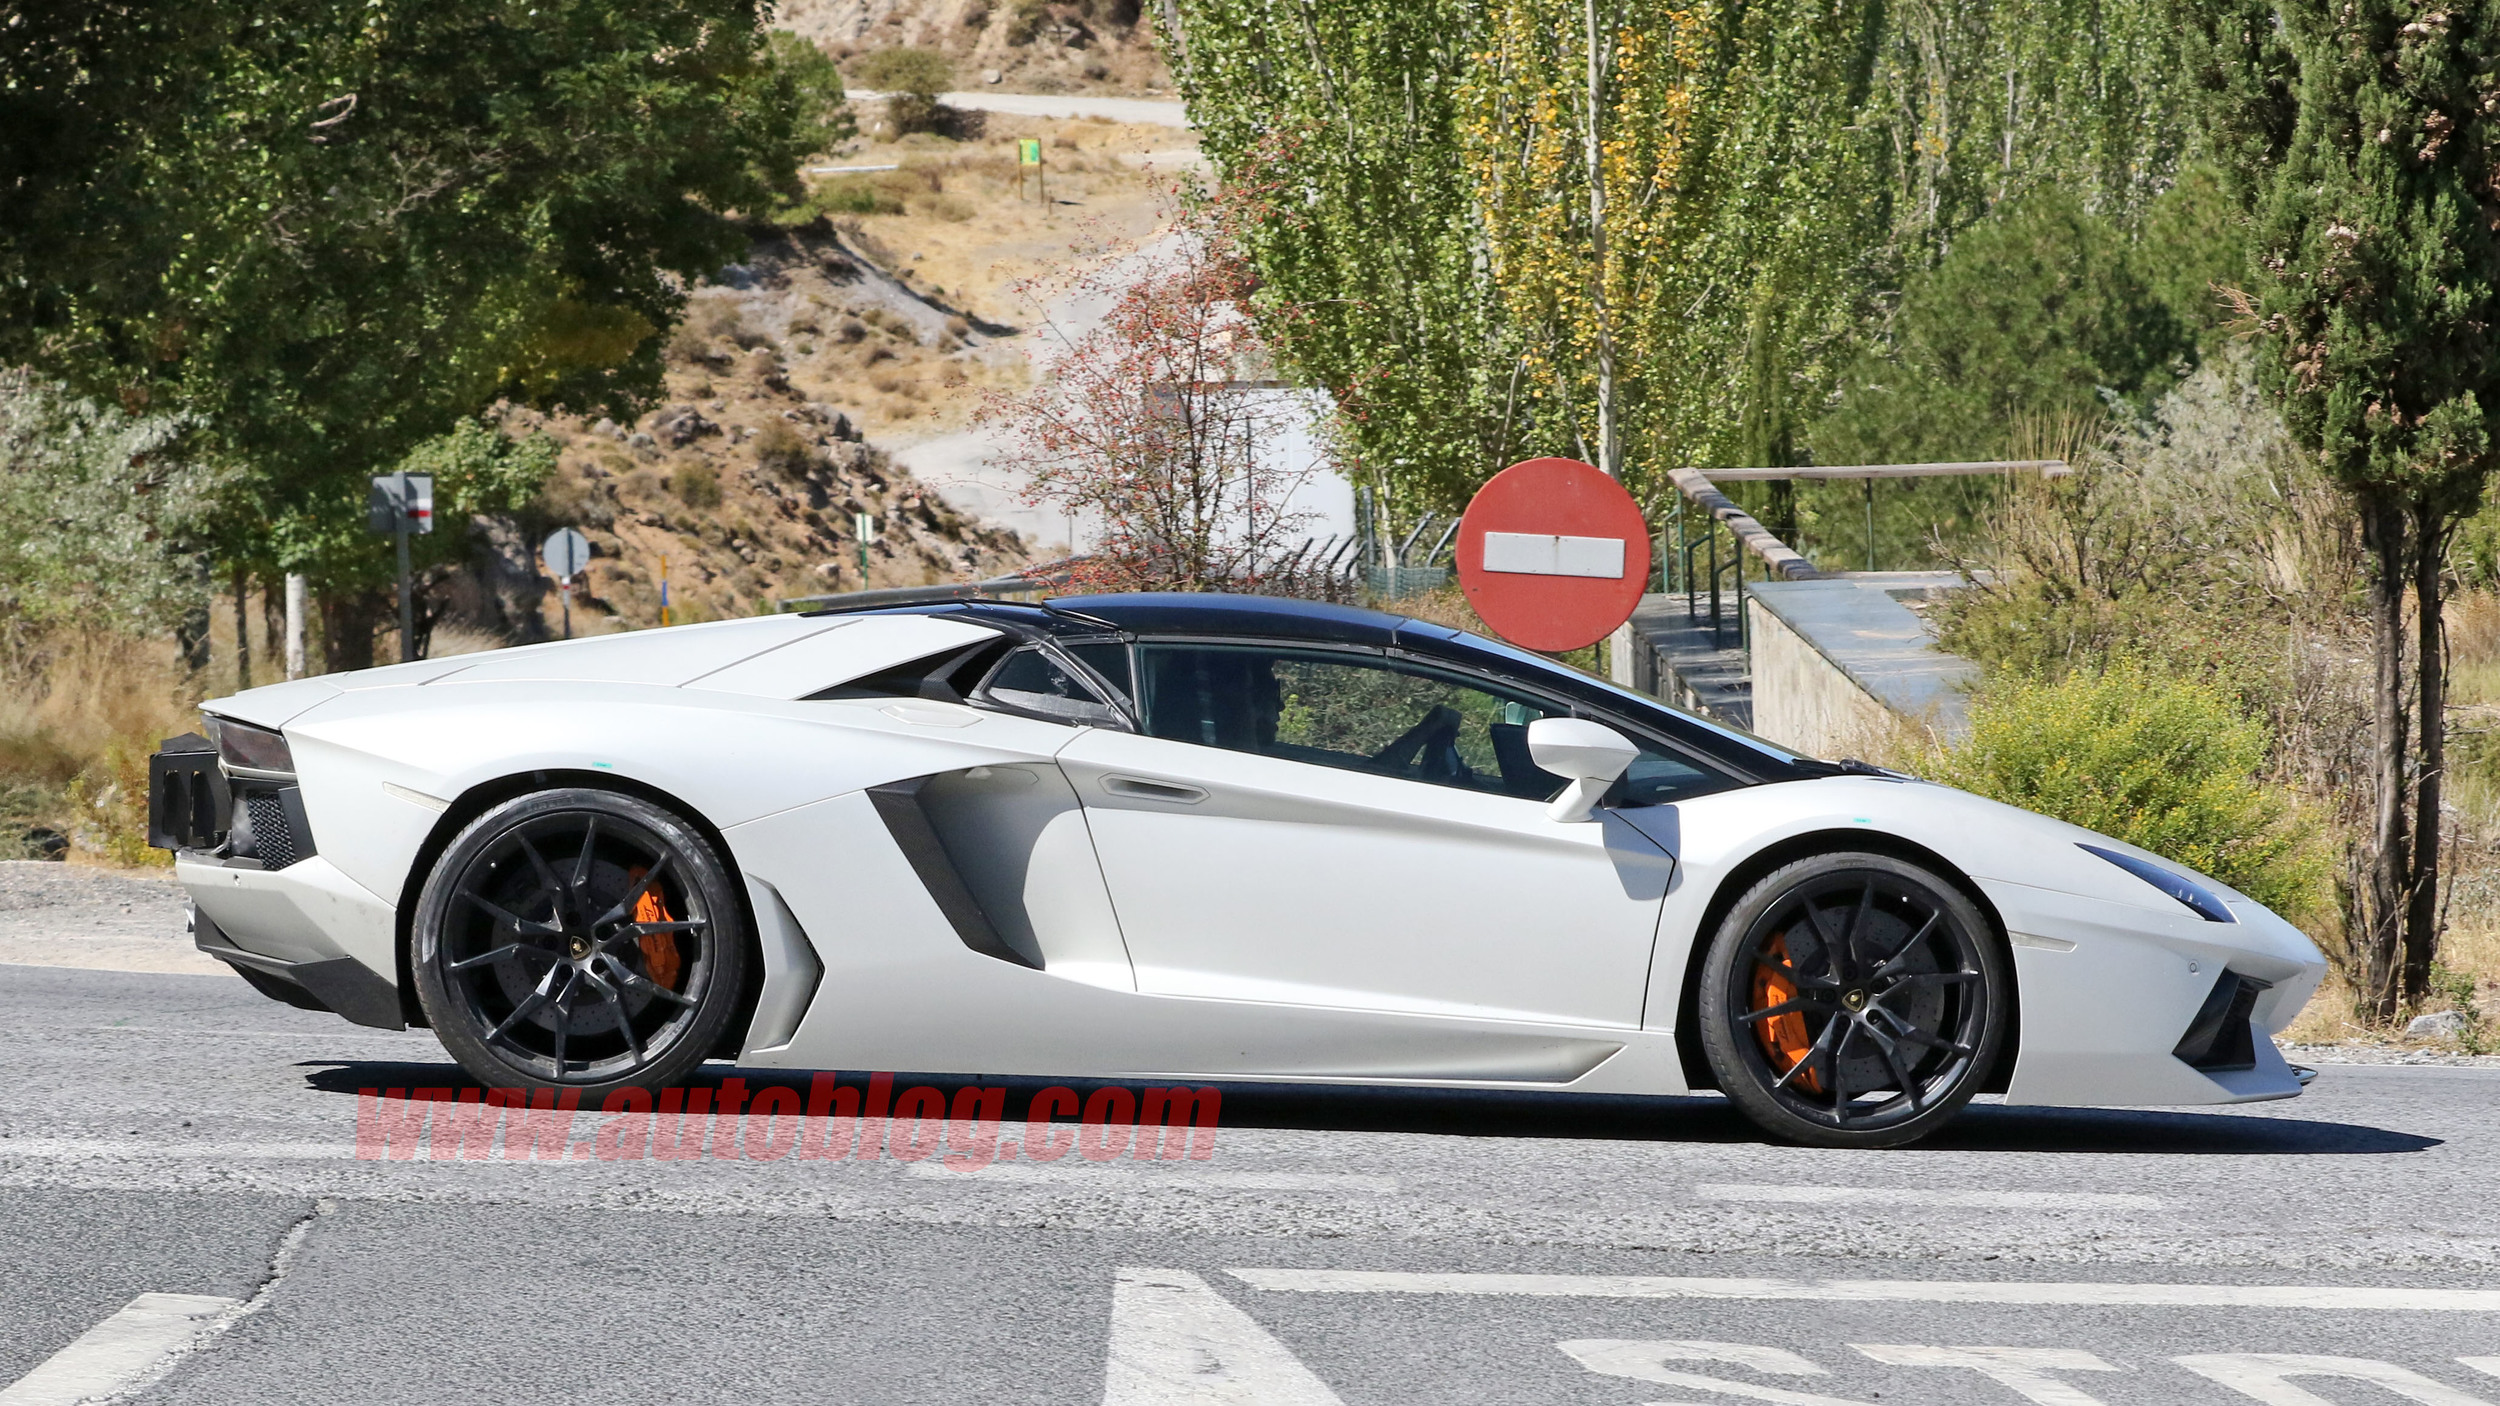 lamborghini prototype 39 s exhaust suggests aventador performante is in the works. Black Bedroom Furniture Sets. Home Design Ideas